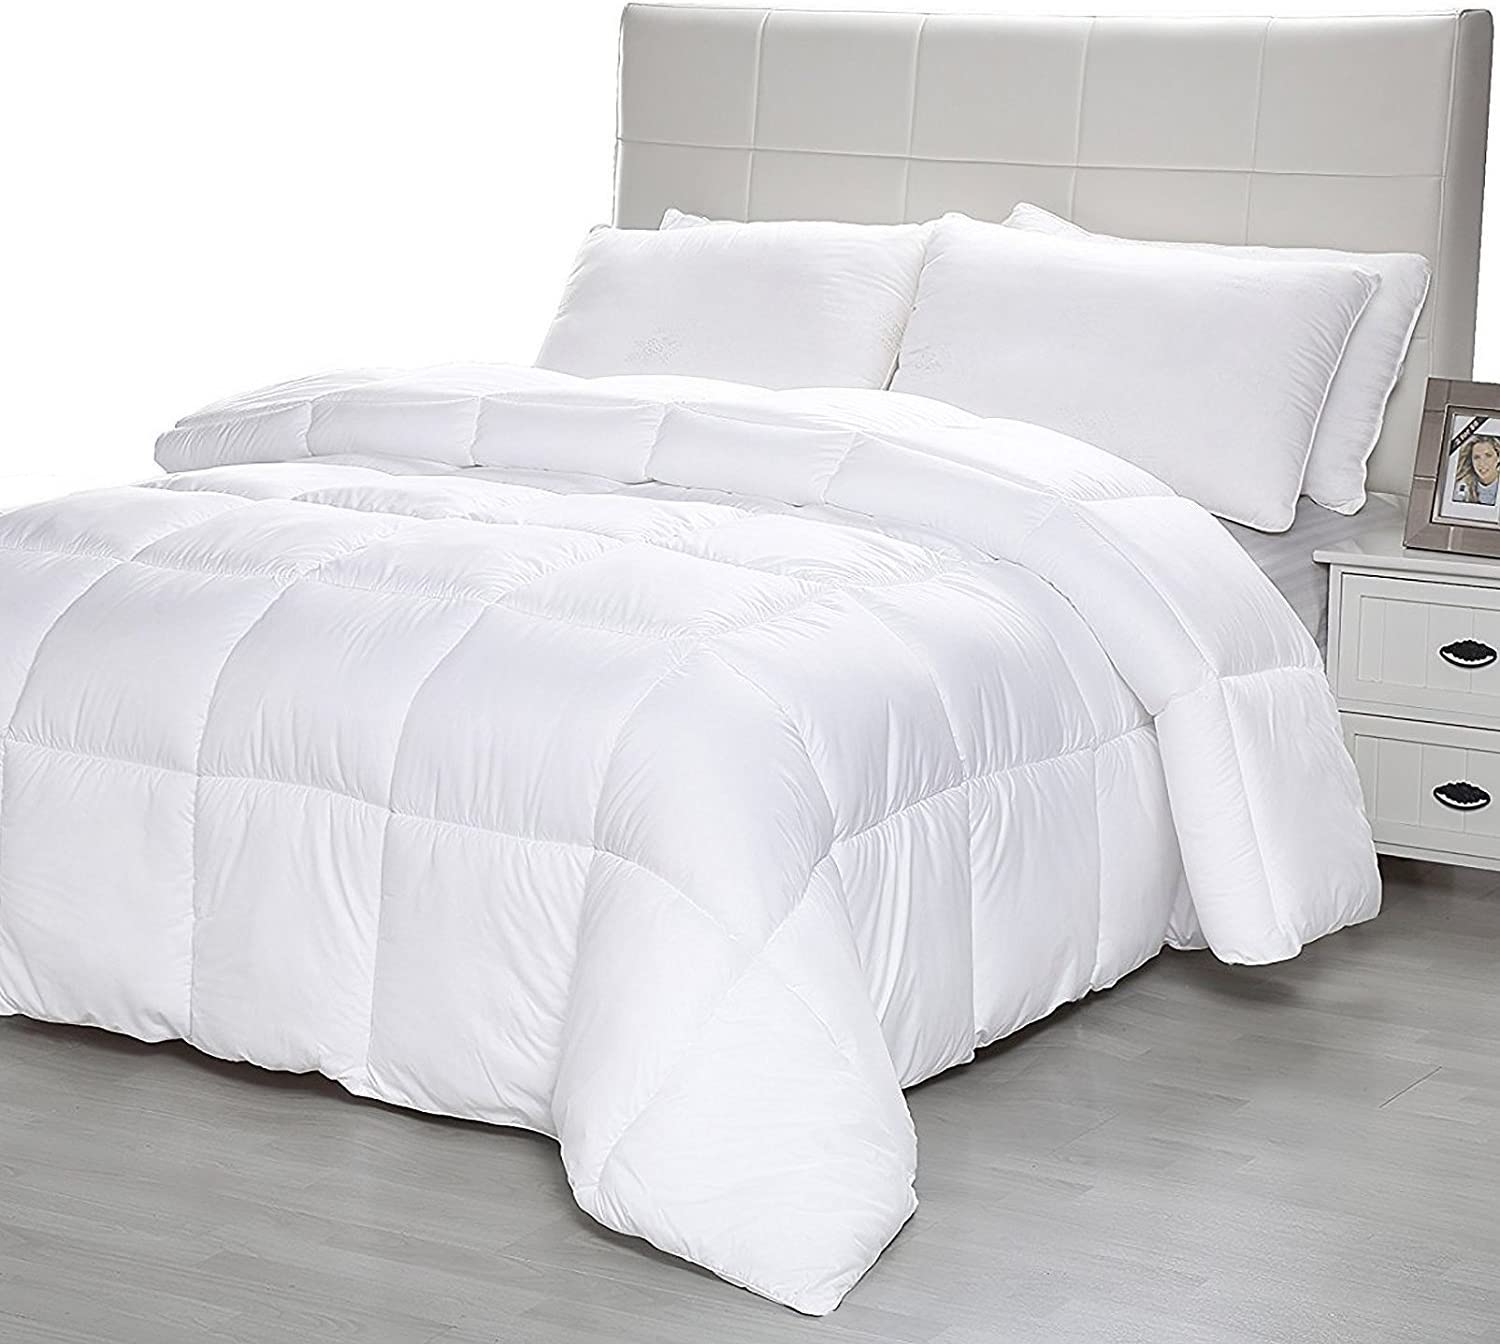 D & G THE DUCK AND GOOSE CO Down Alternative Comforter with Corner Tabs, Plush Microfiber Quilted Duvet Insert Lightweight for All Season, Premium Hotel Quality - Machine Washable - Queen